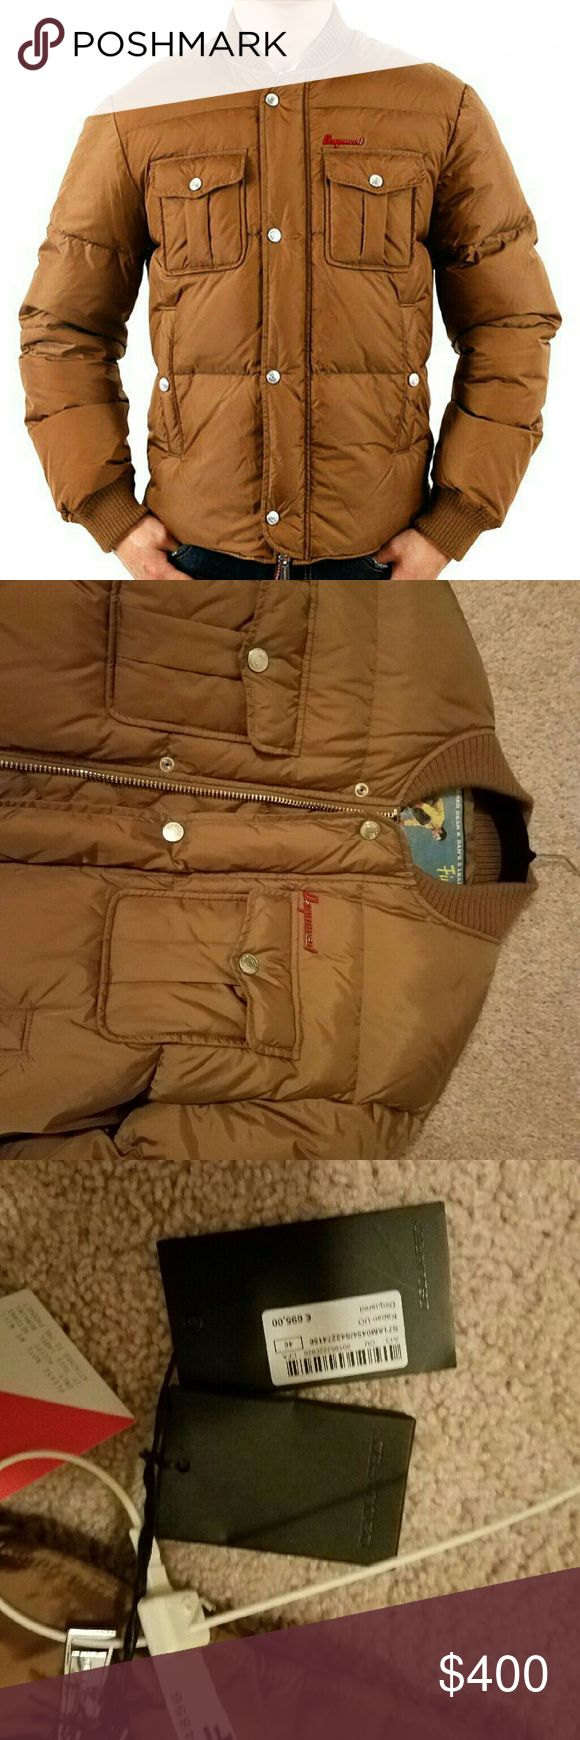 (New) Dsquared2 Padded Down Jacket Size 46 Never worn. Maintained in good quality. I was going to wear it but then I decided to buy a Moncler jacket and no longer need this one. Real down so keeping warmth is no worry. Still has price tags. No replica. DSQUARED Jackets & Coats